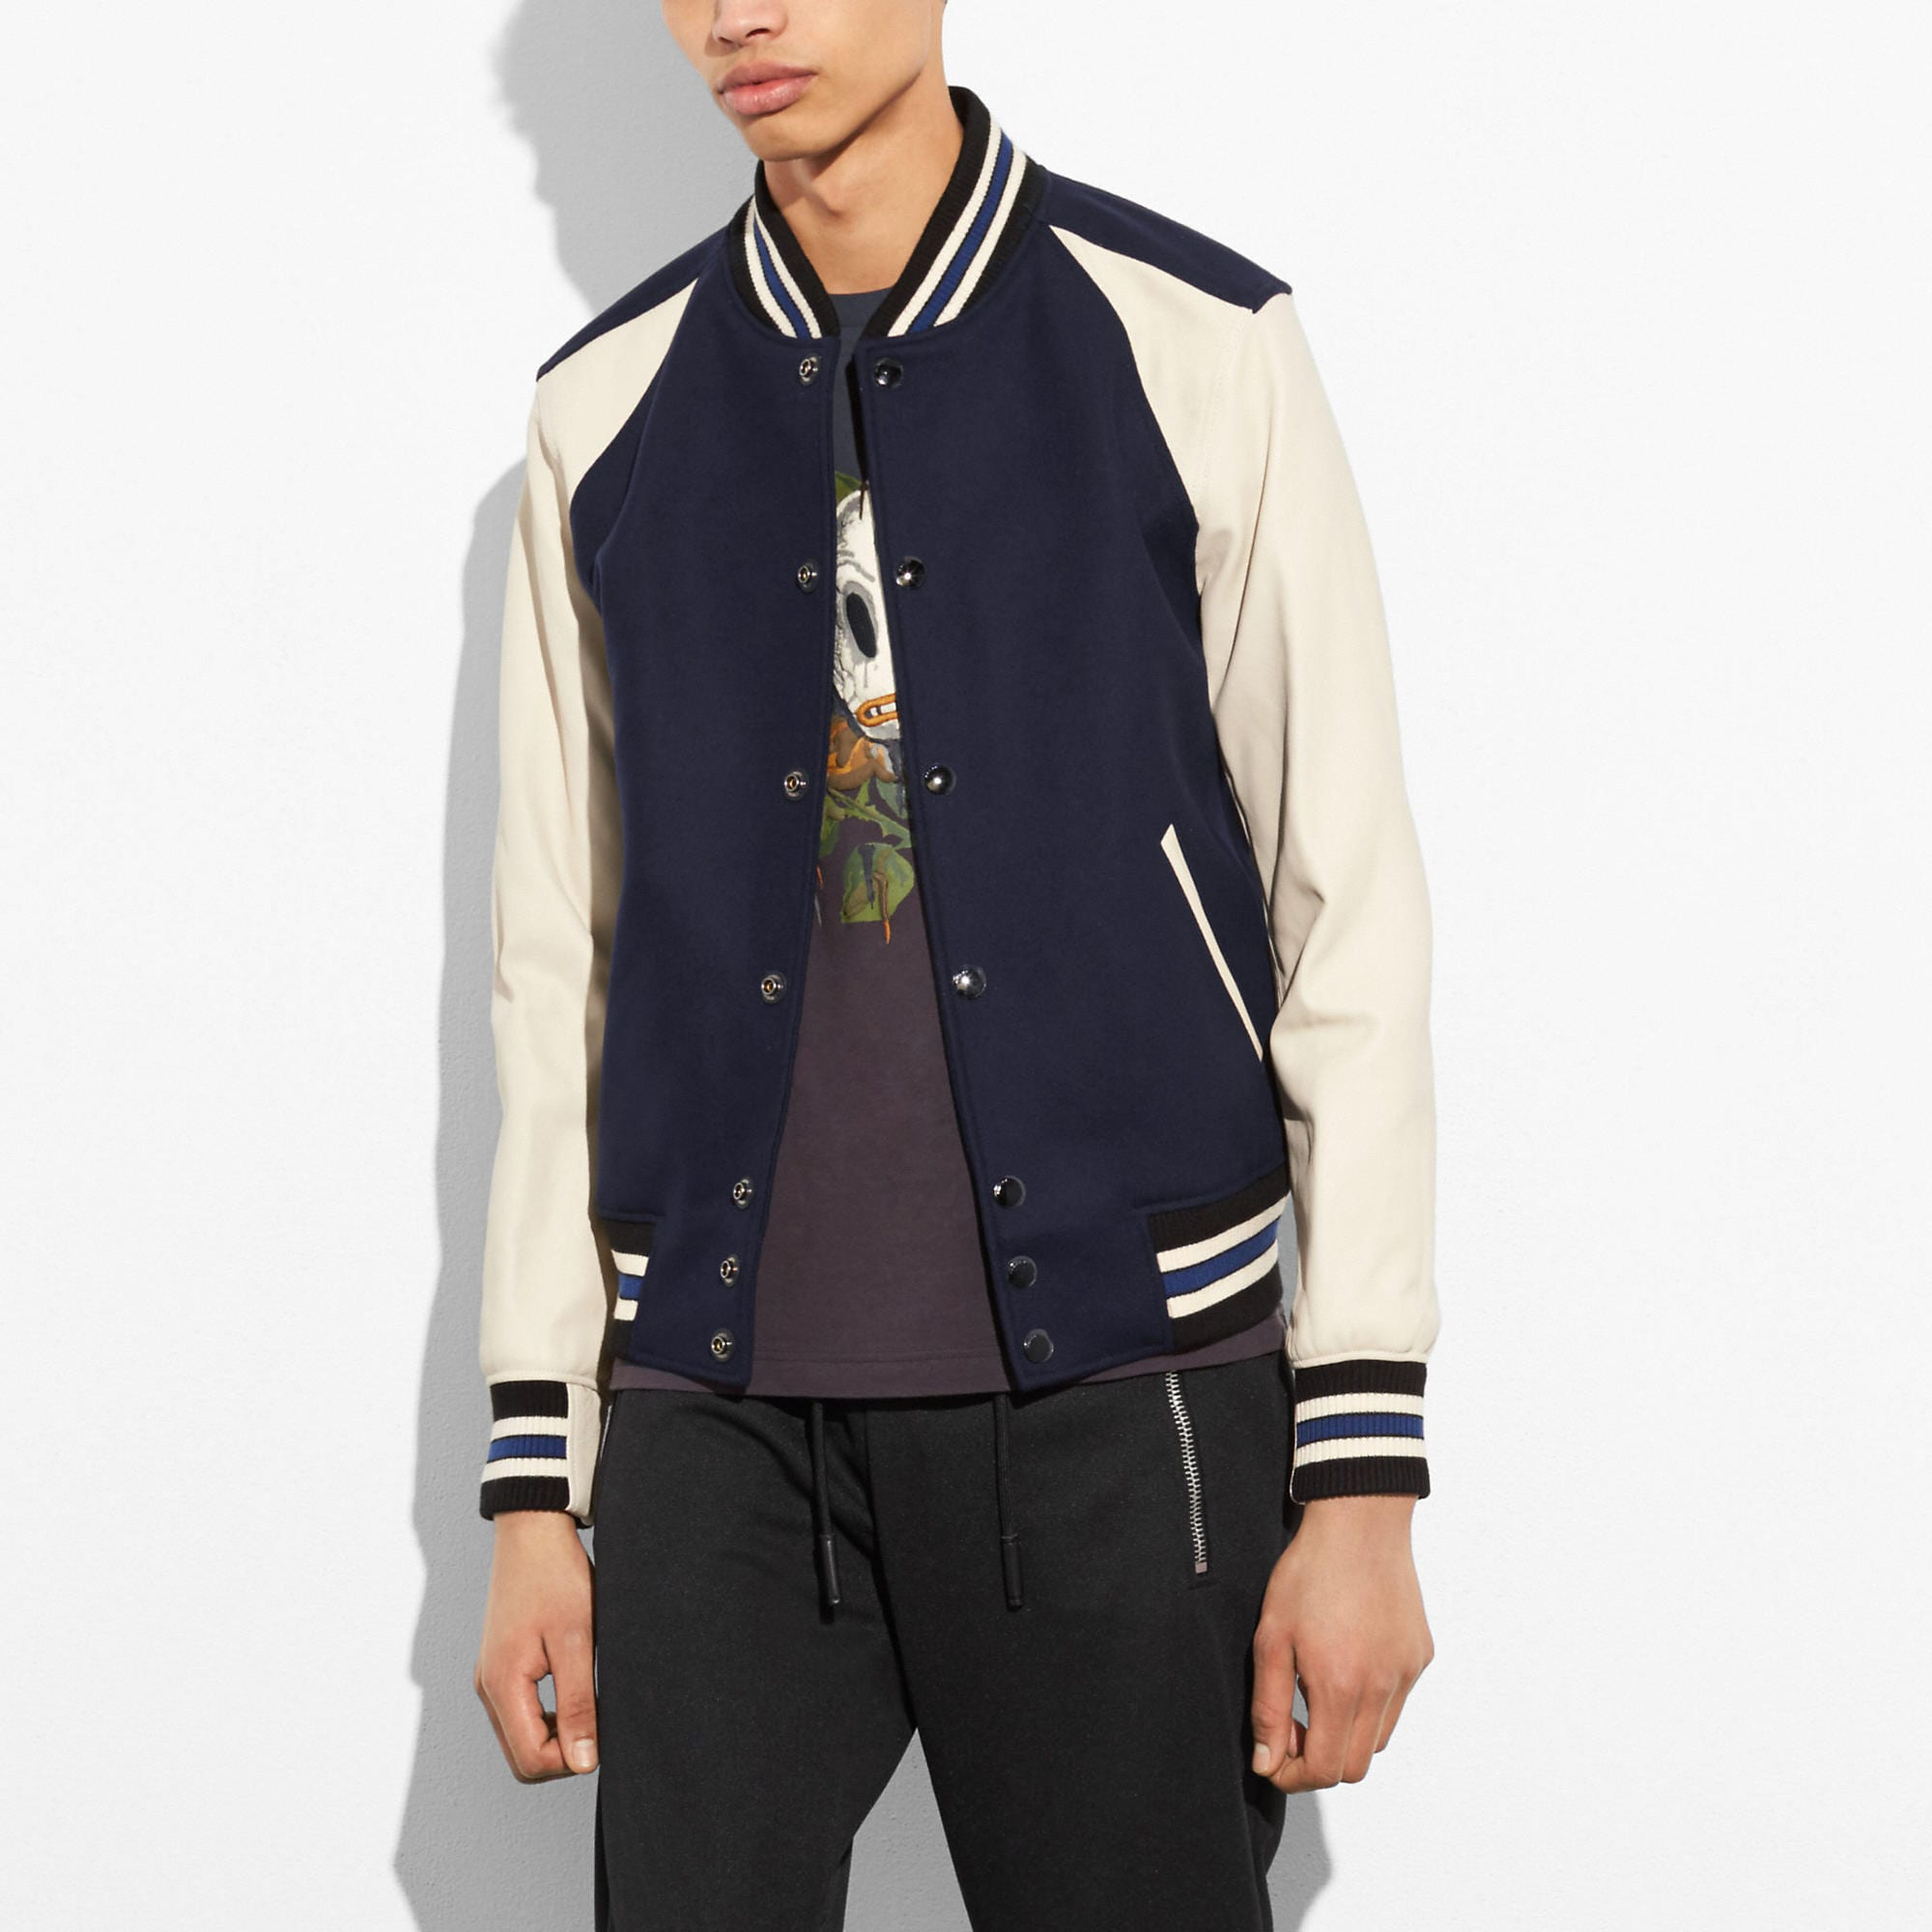 Coach Wool Leather Varsity Jacket